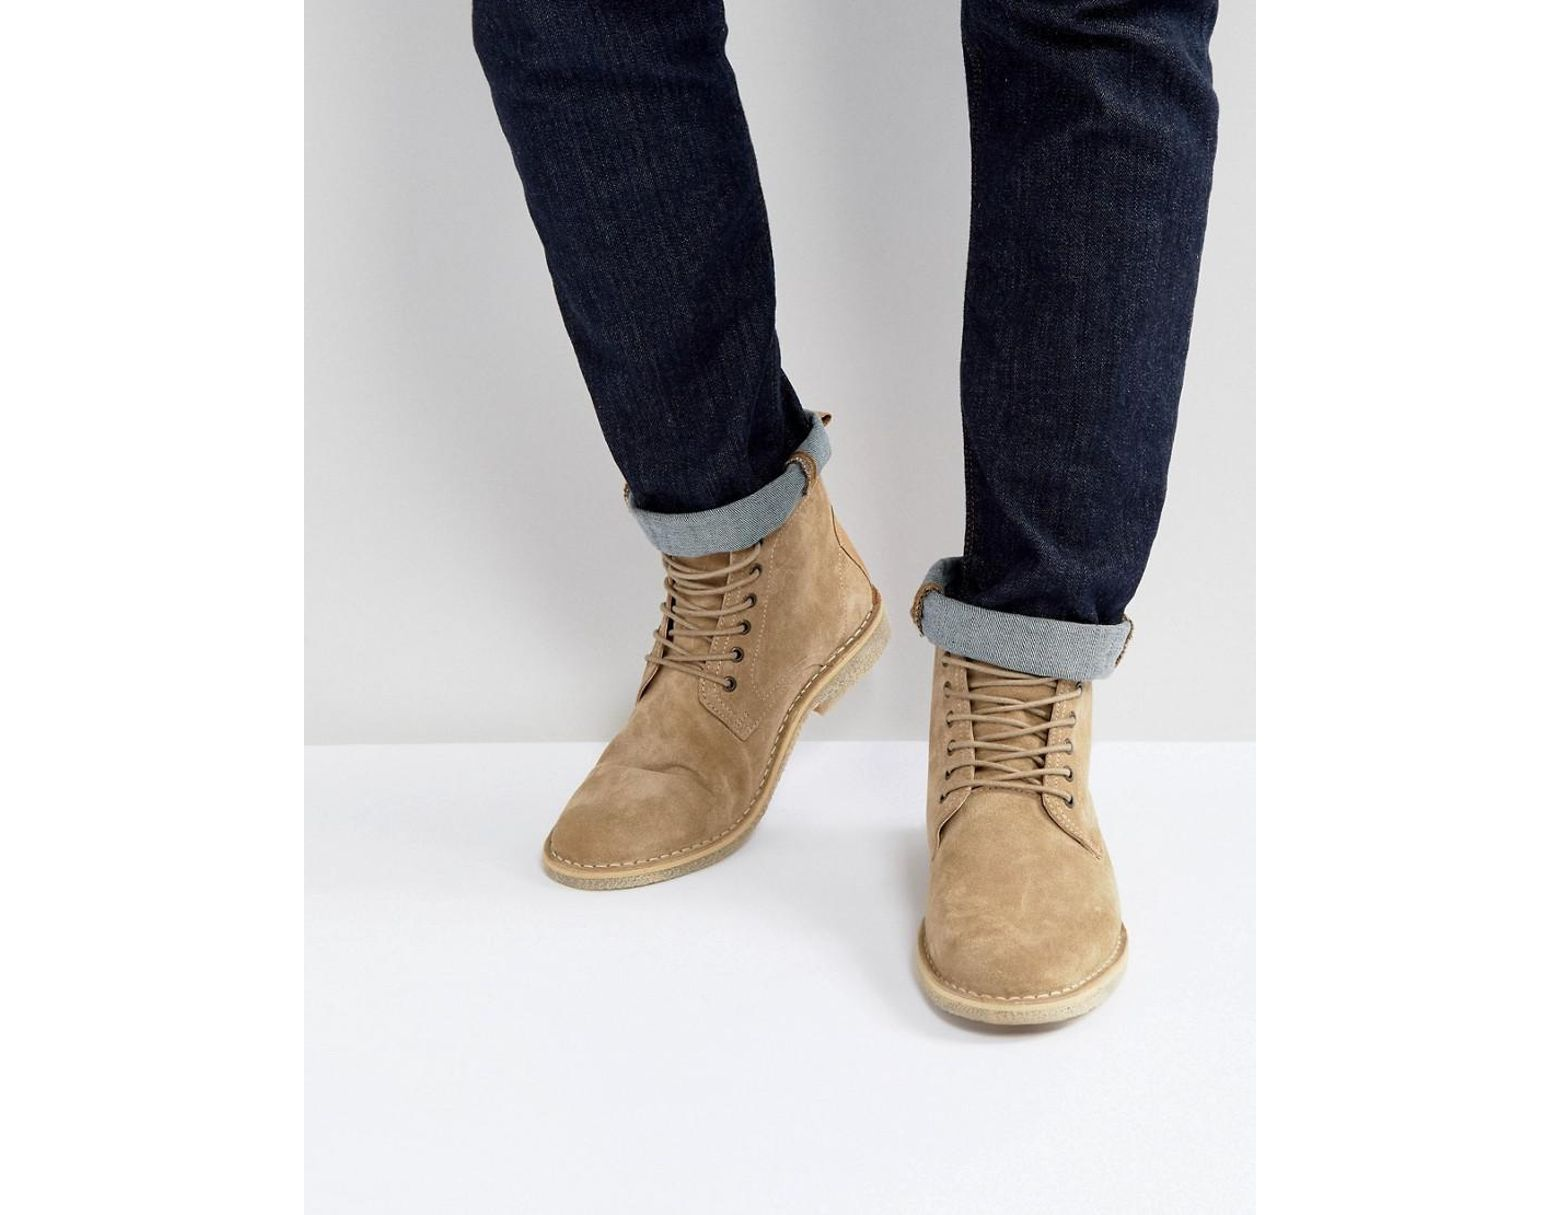 cdd388c0ff7 Men's Natural Desert Boots In Stone Suede With Leather Detail